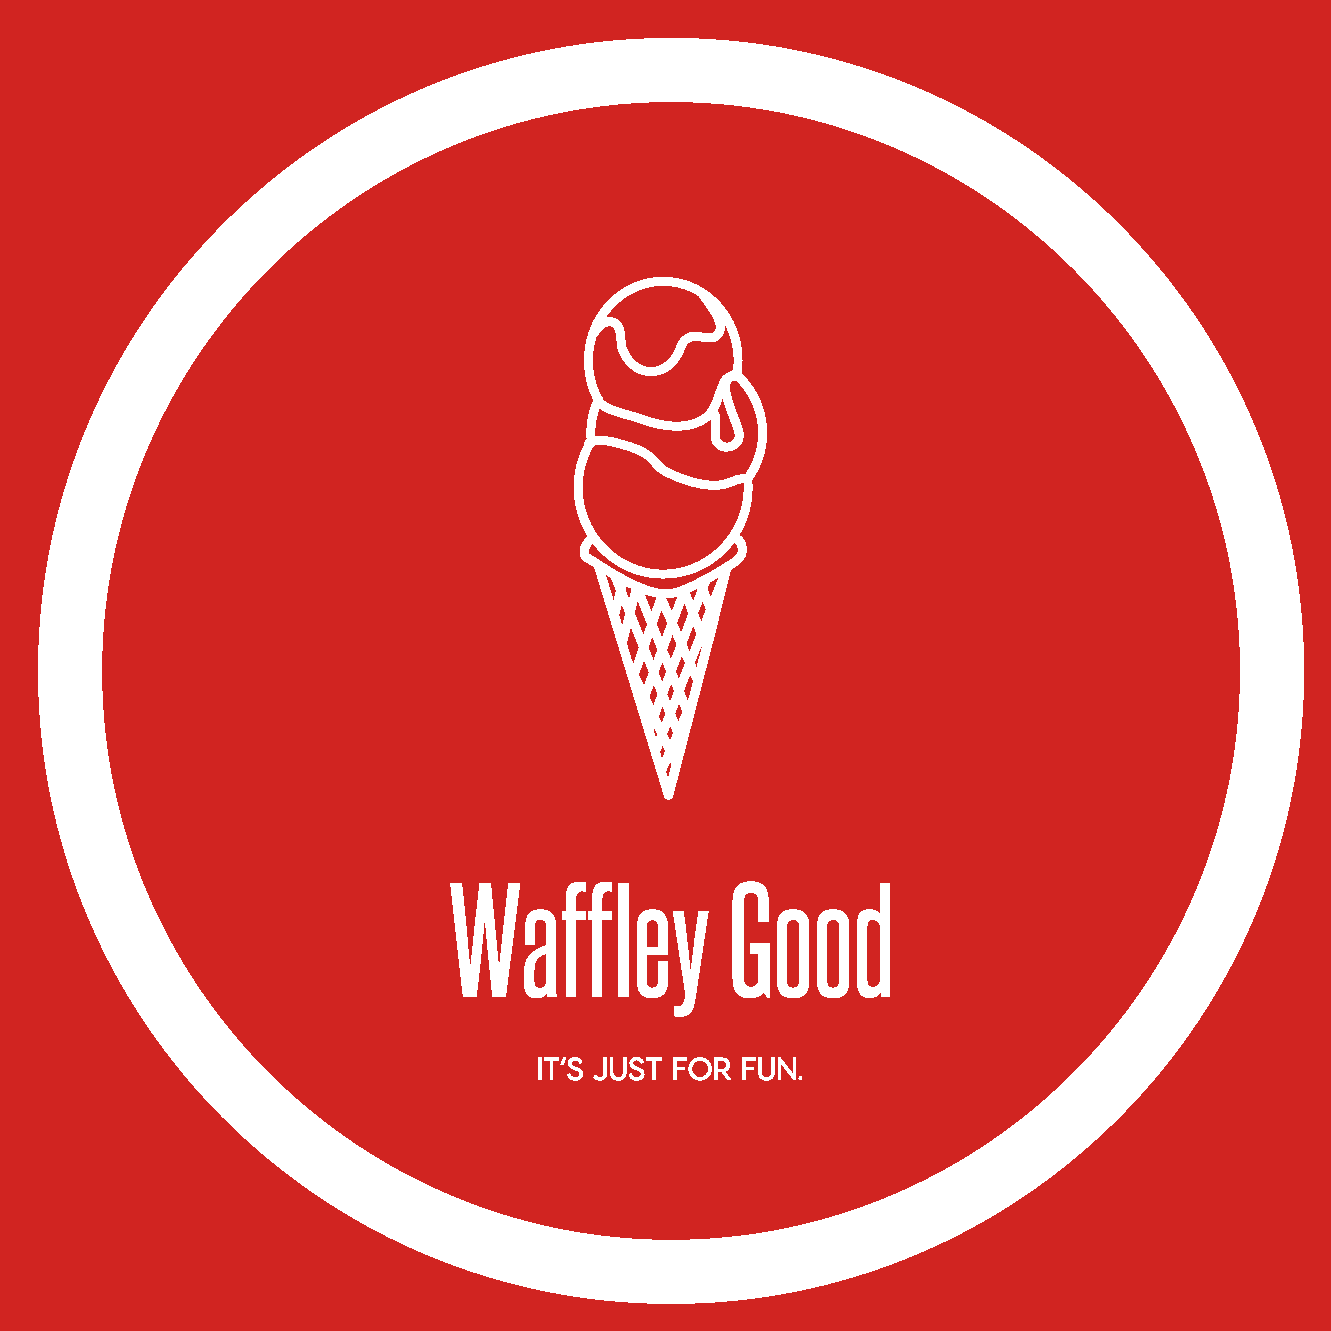 Waffley Good logo